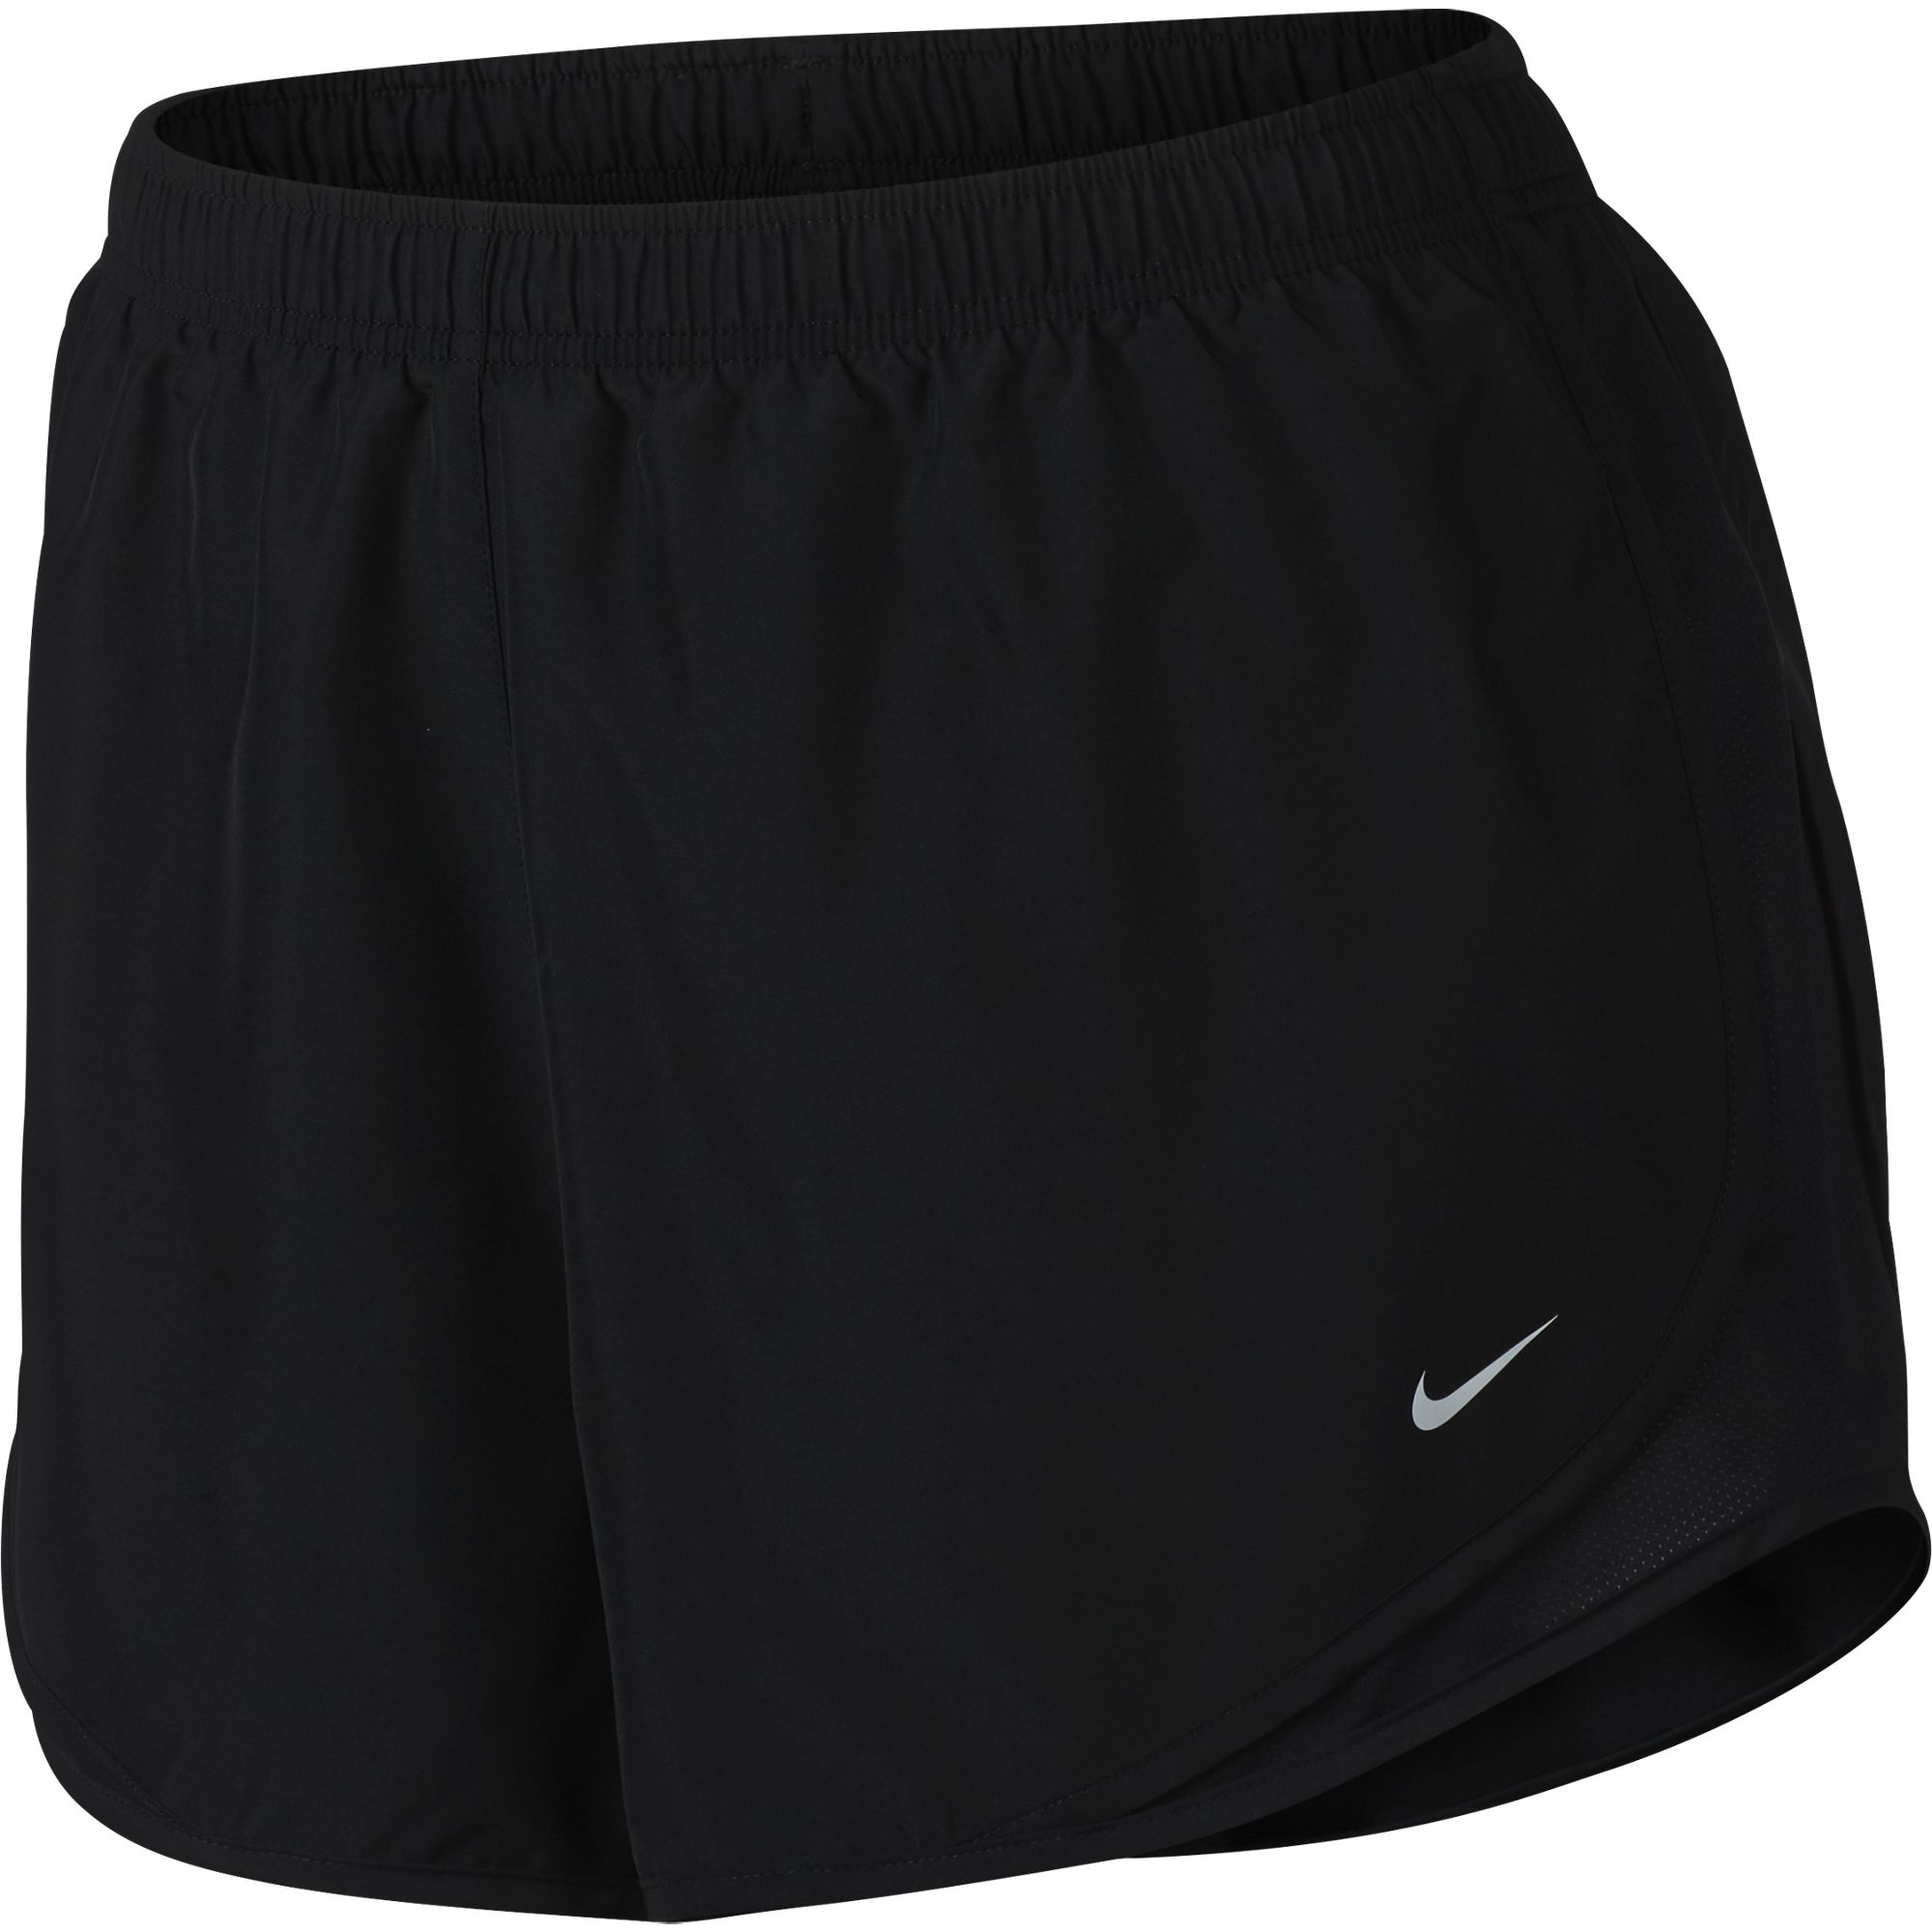 """Women's Plus Size 3"""" Dry Tempo Running Shorts, Black, swatch"""